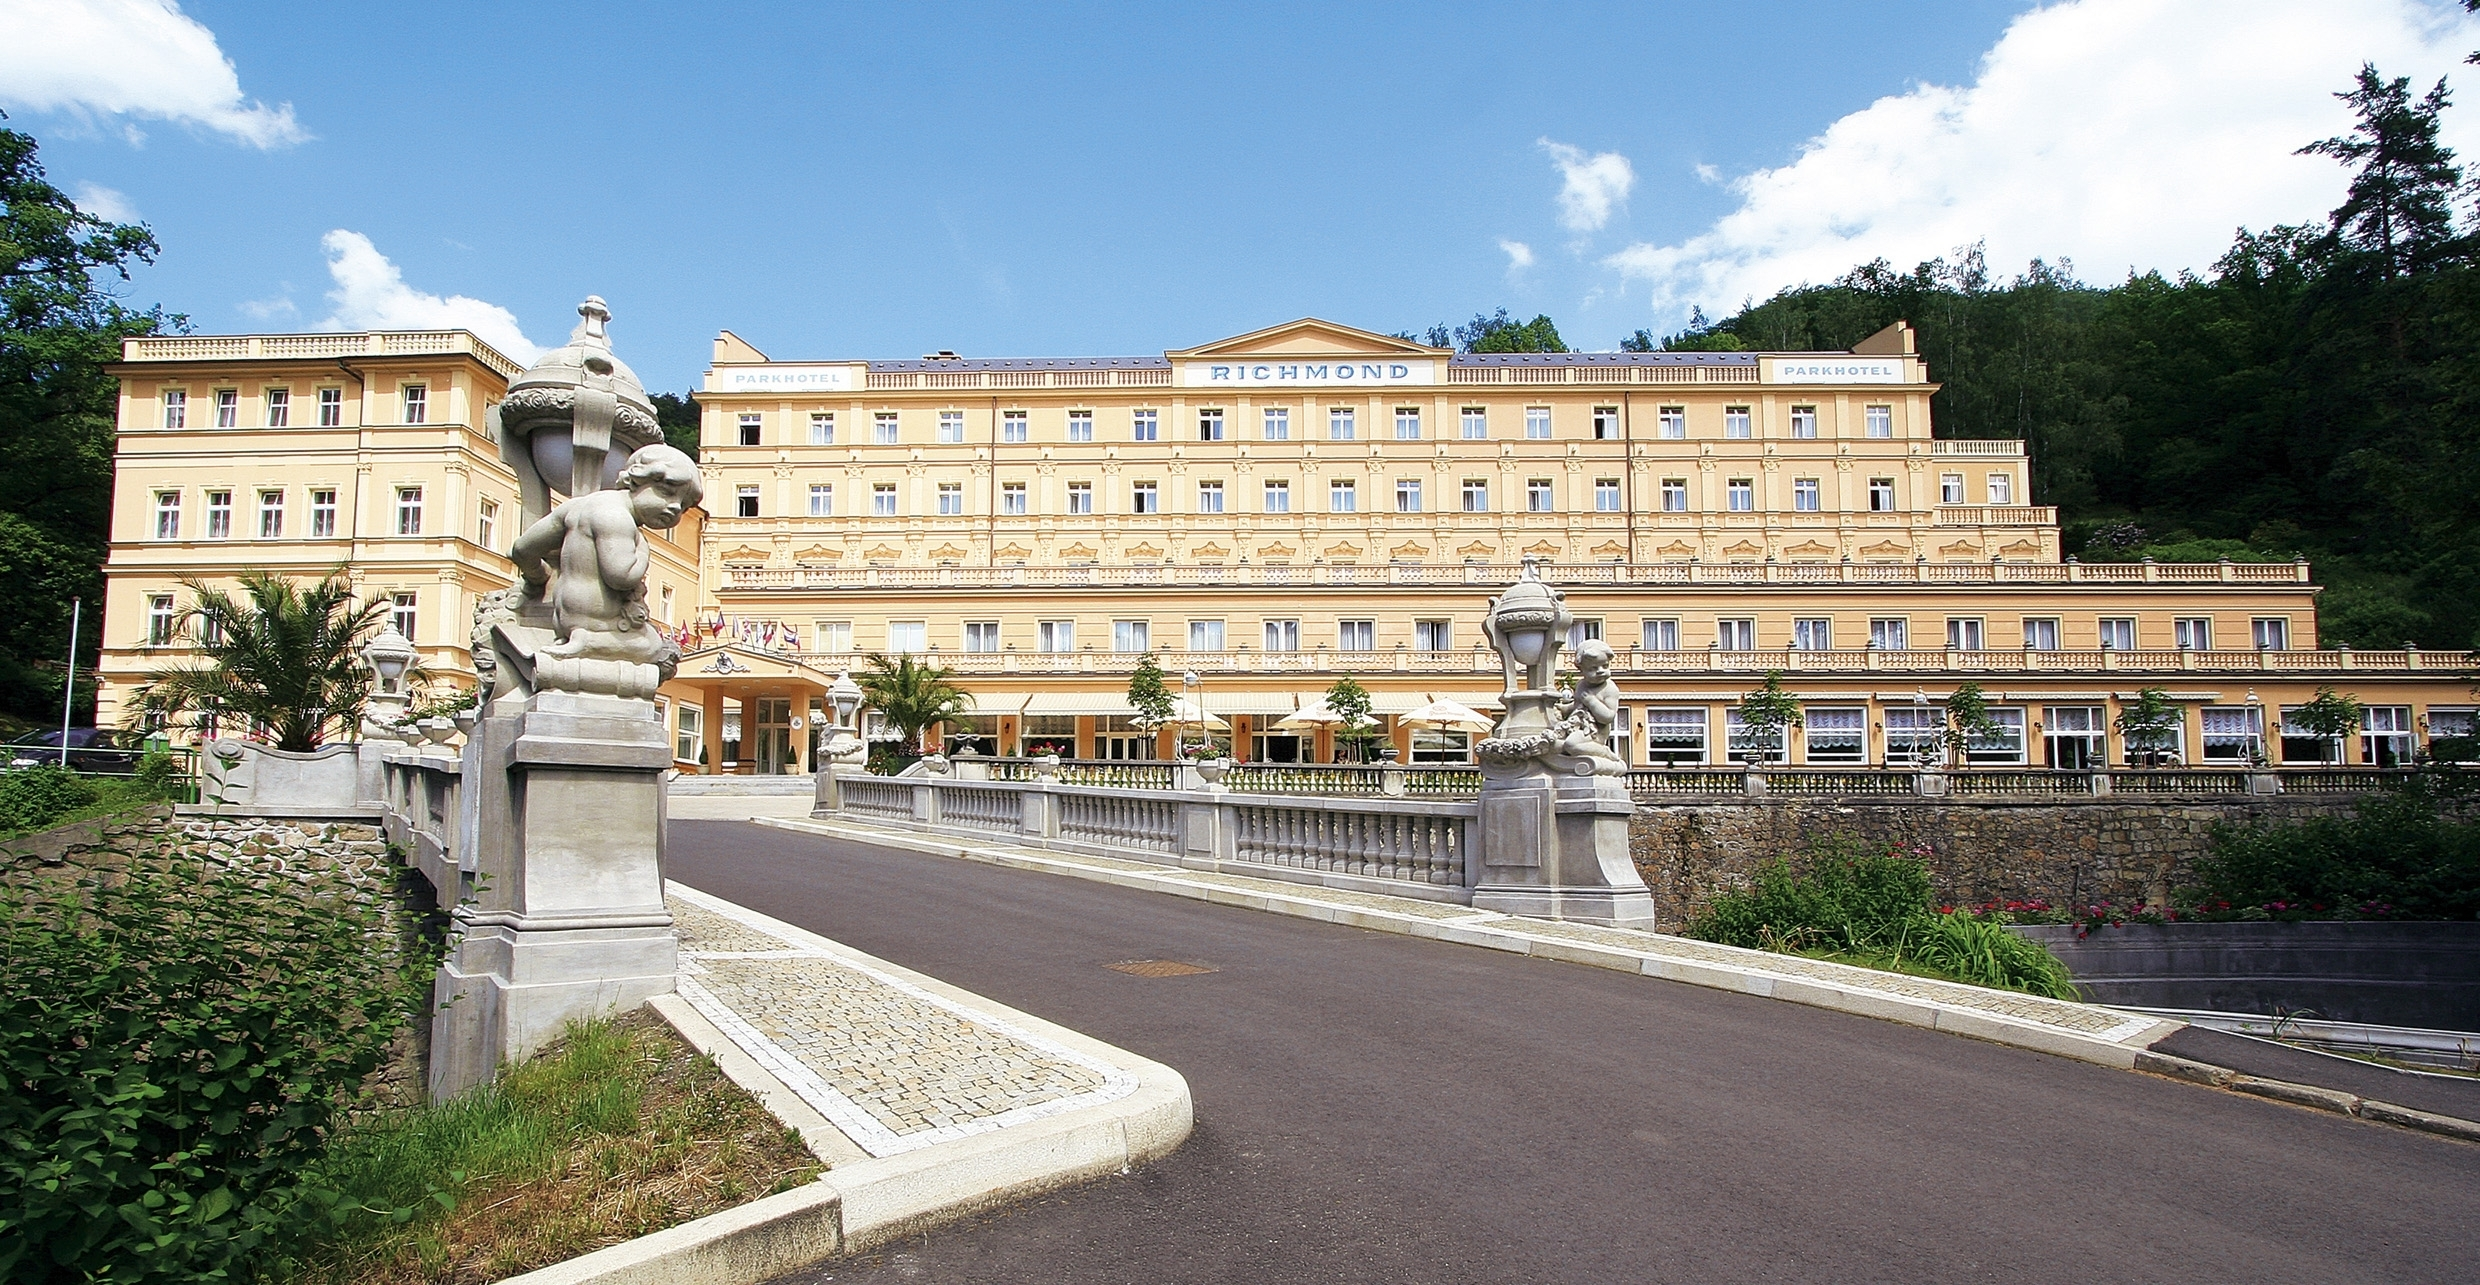 Parkhotel Richmond Karlovy Vary, 4*, Карловы Вары сборник статей resonances science proceedings of articles the international scientific conference czech republic karlovy vary – russia moscow 11–12 february 2016